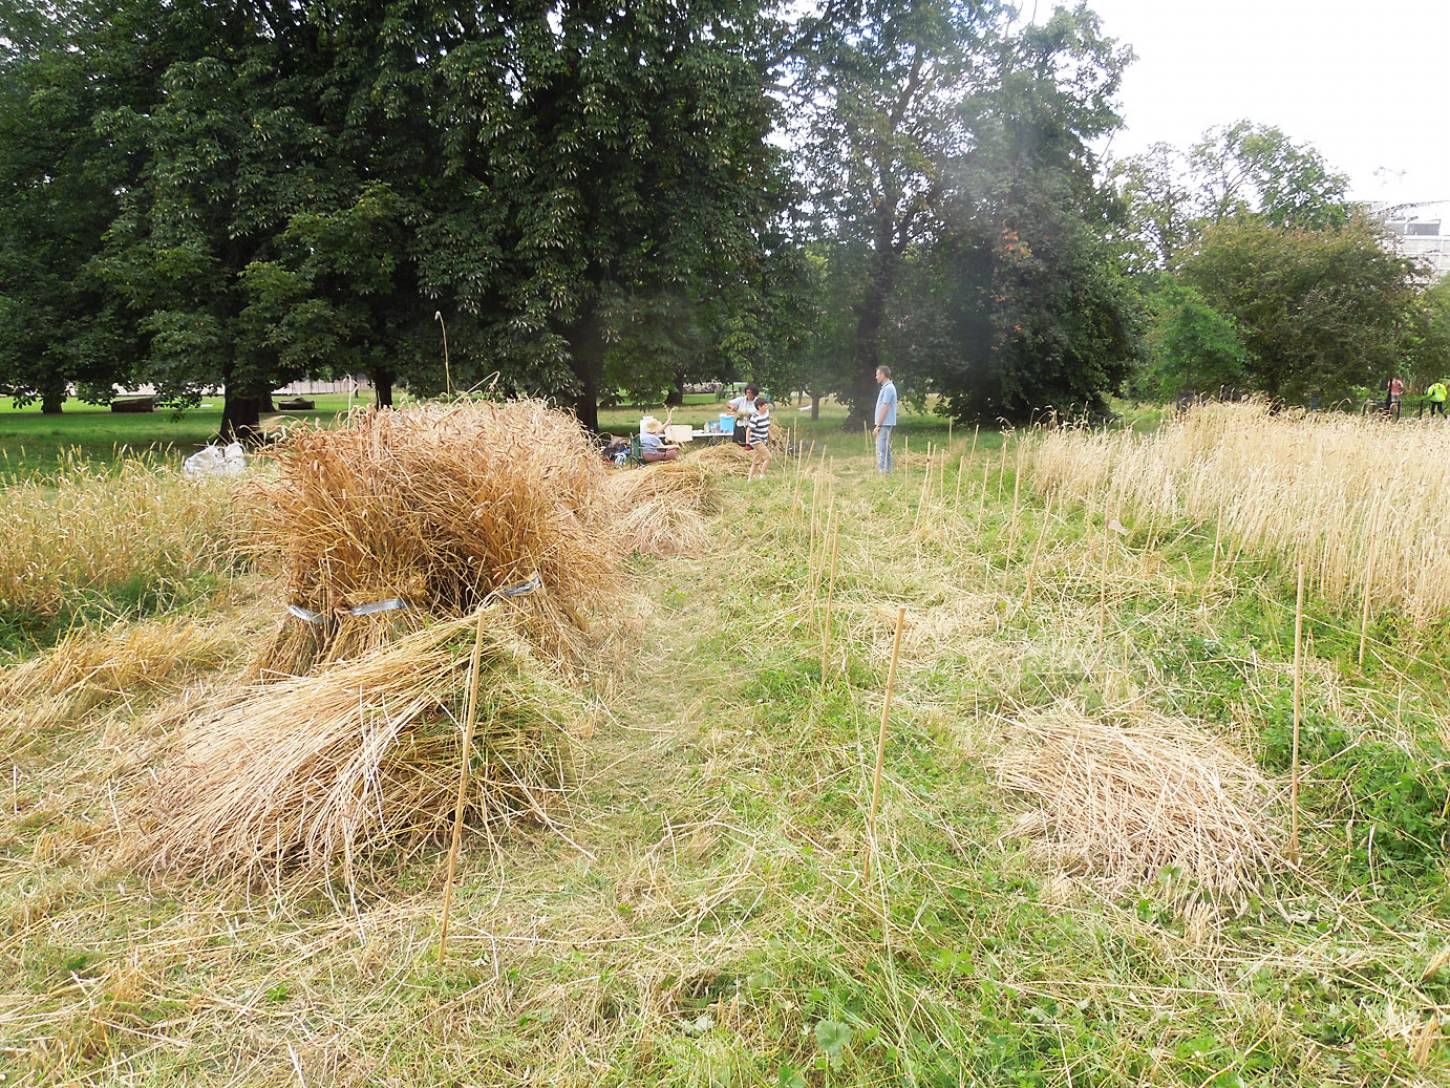 Ruskin Park harvest - 4:03pm&nbsp;8<sup>th</sup>&nbsp;Aug.&nbsp;'16